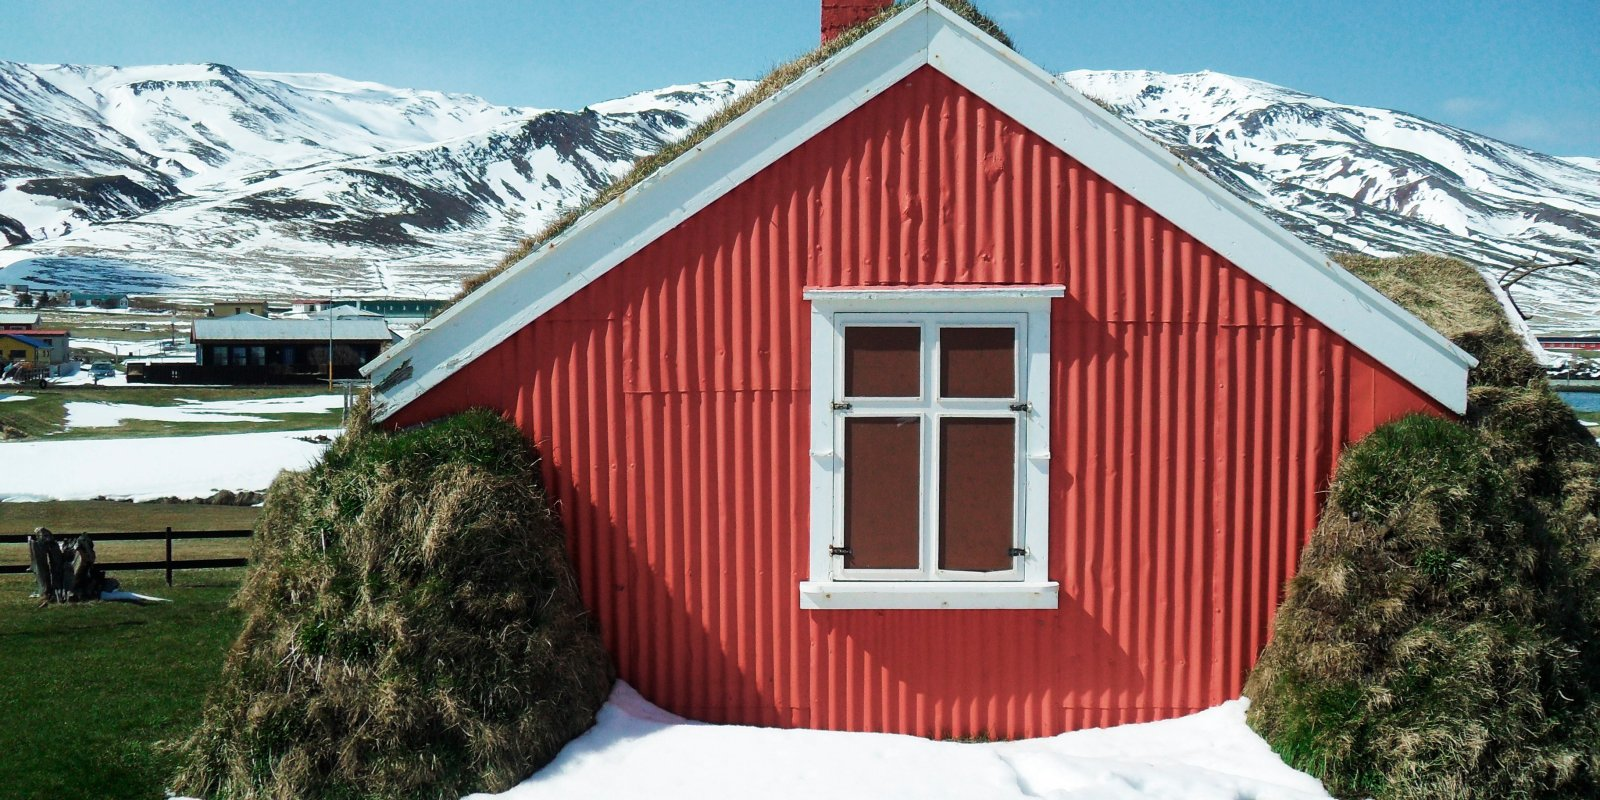 Exploring Borgarfjörður Eystri: Where Elves And Puffins Play Hide And Seek